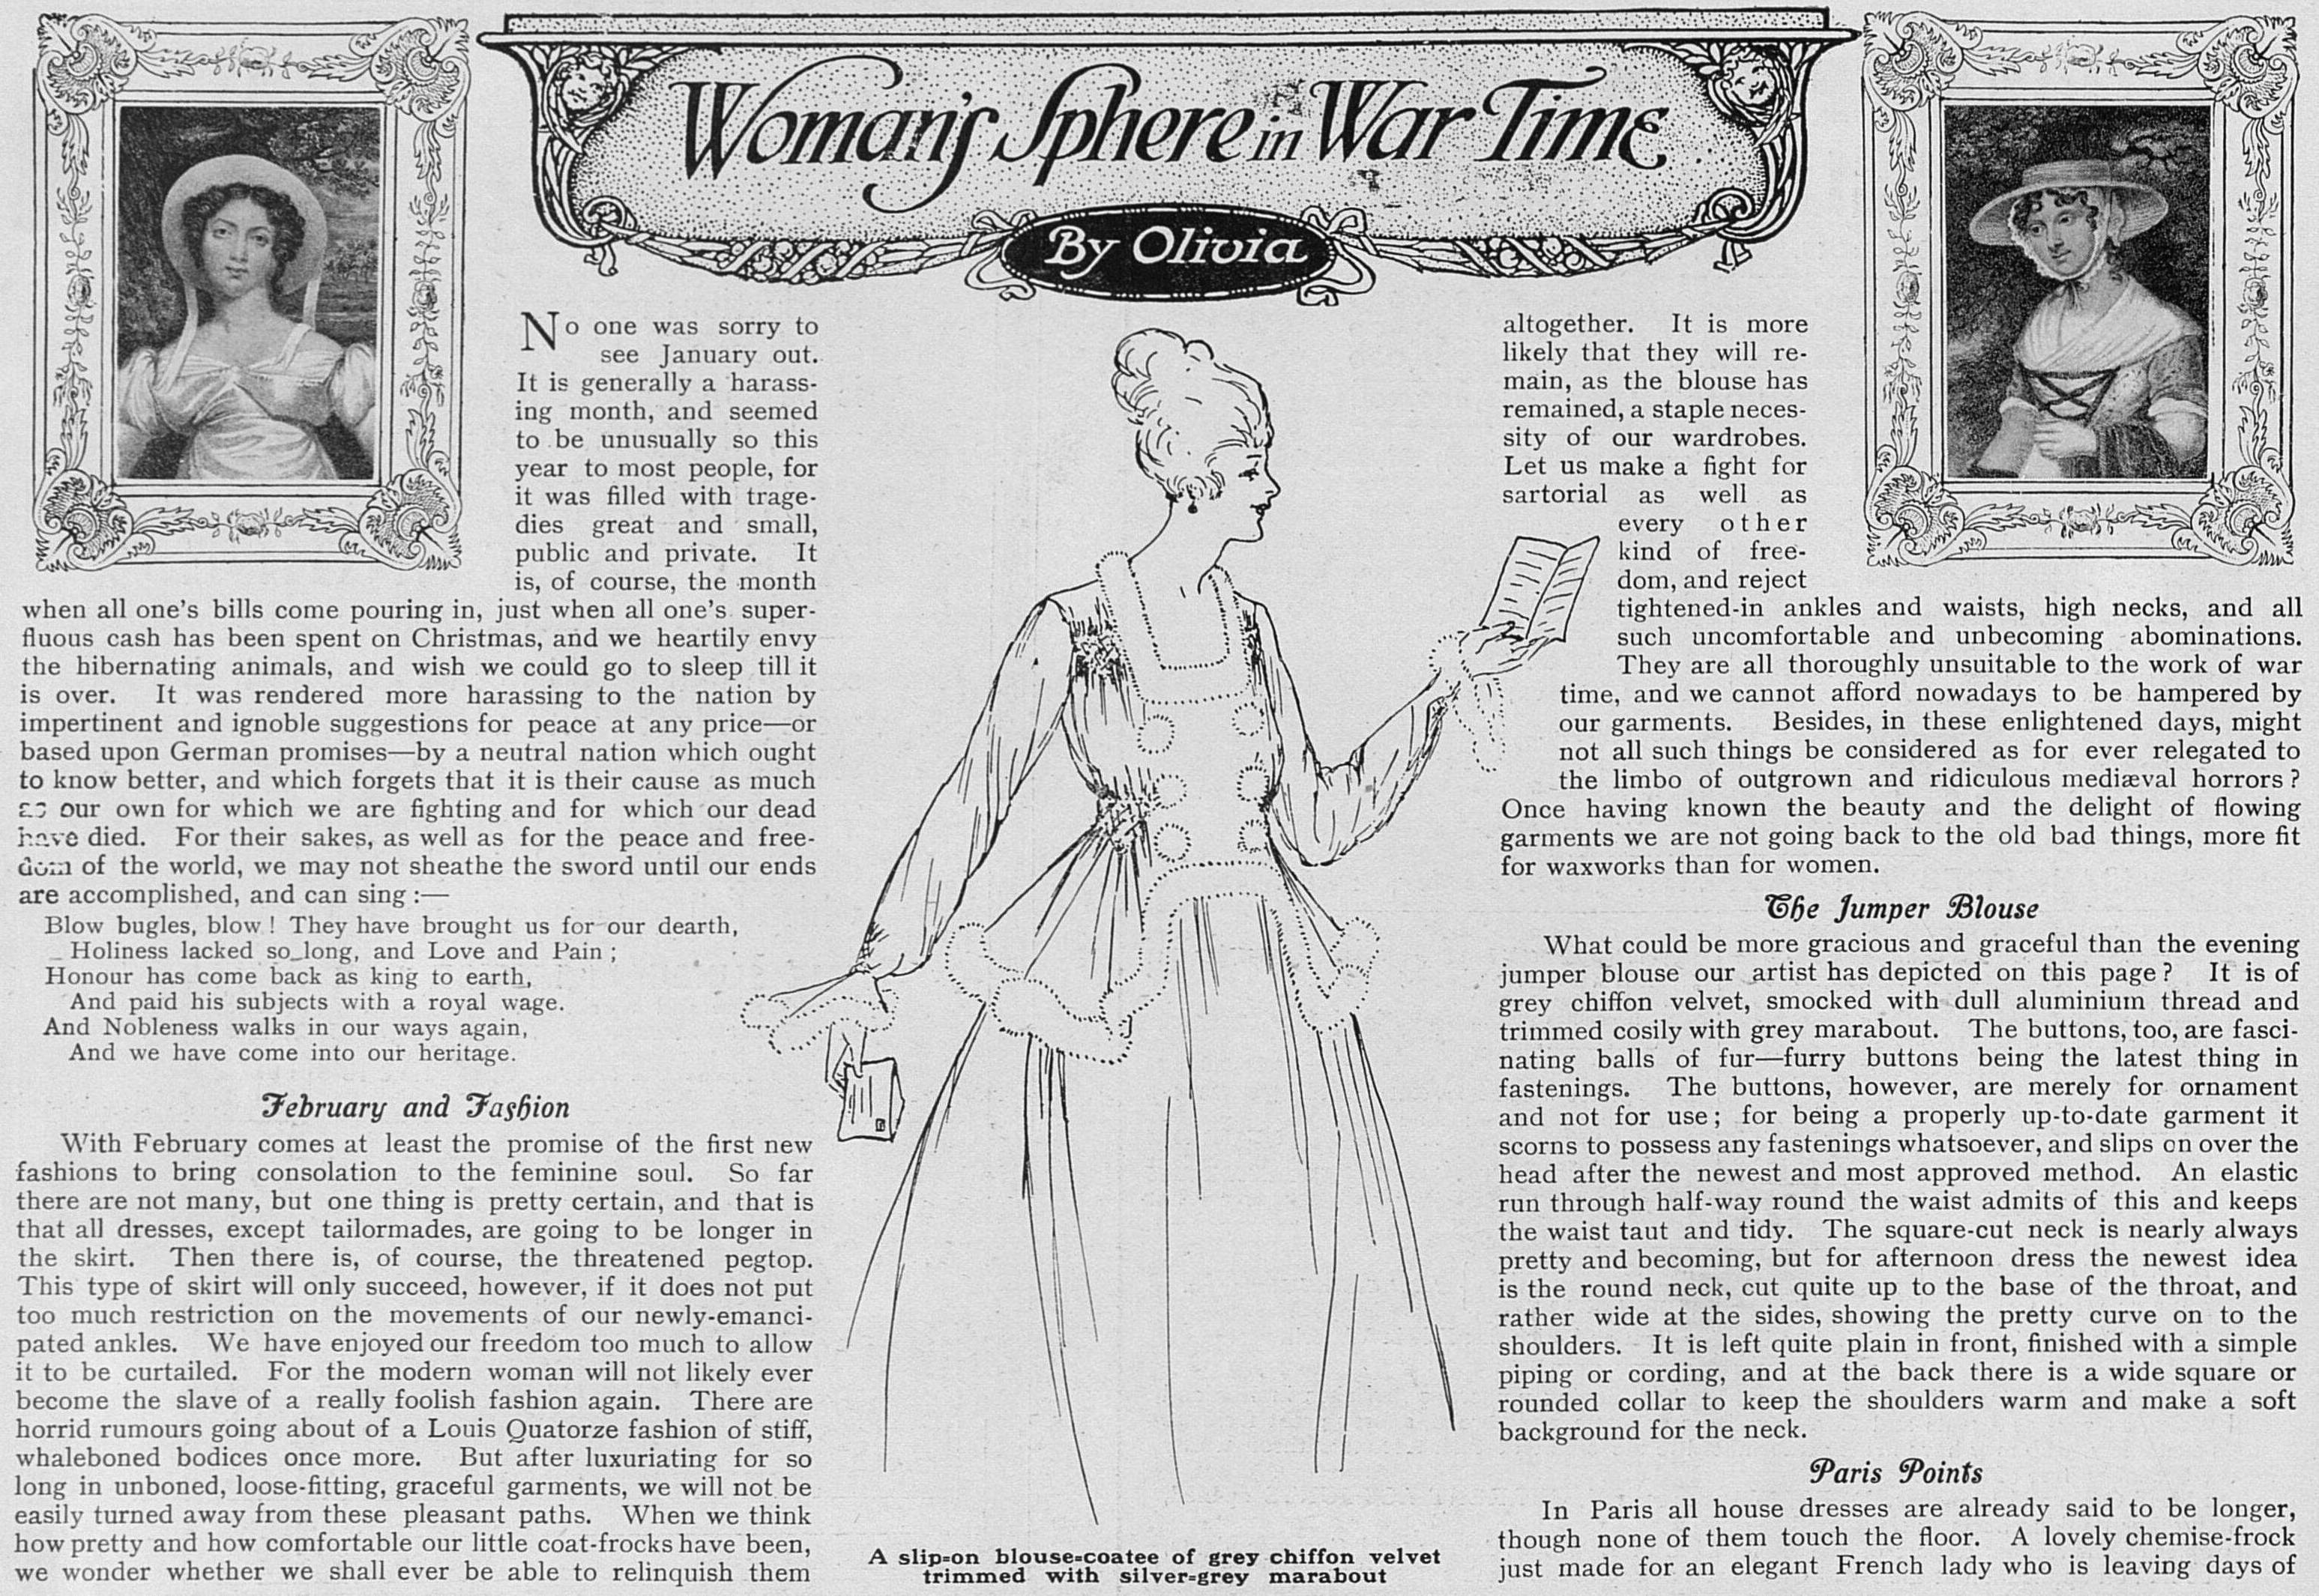 WomansSphereInWarTime_3Feb1917